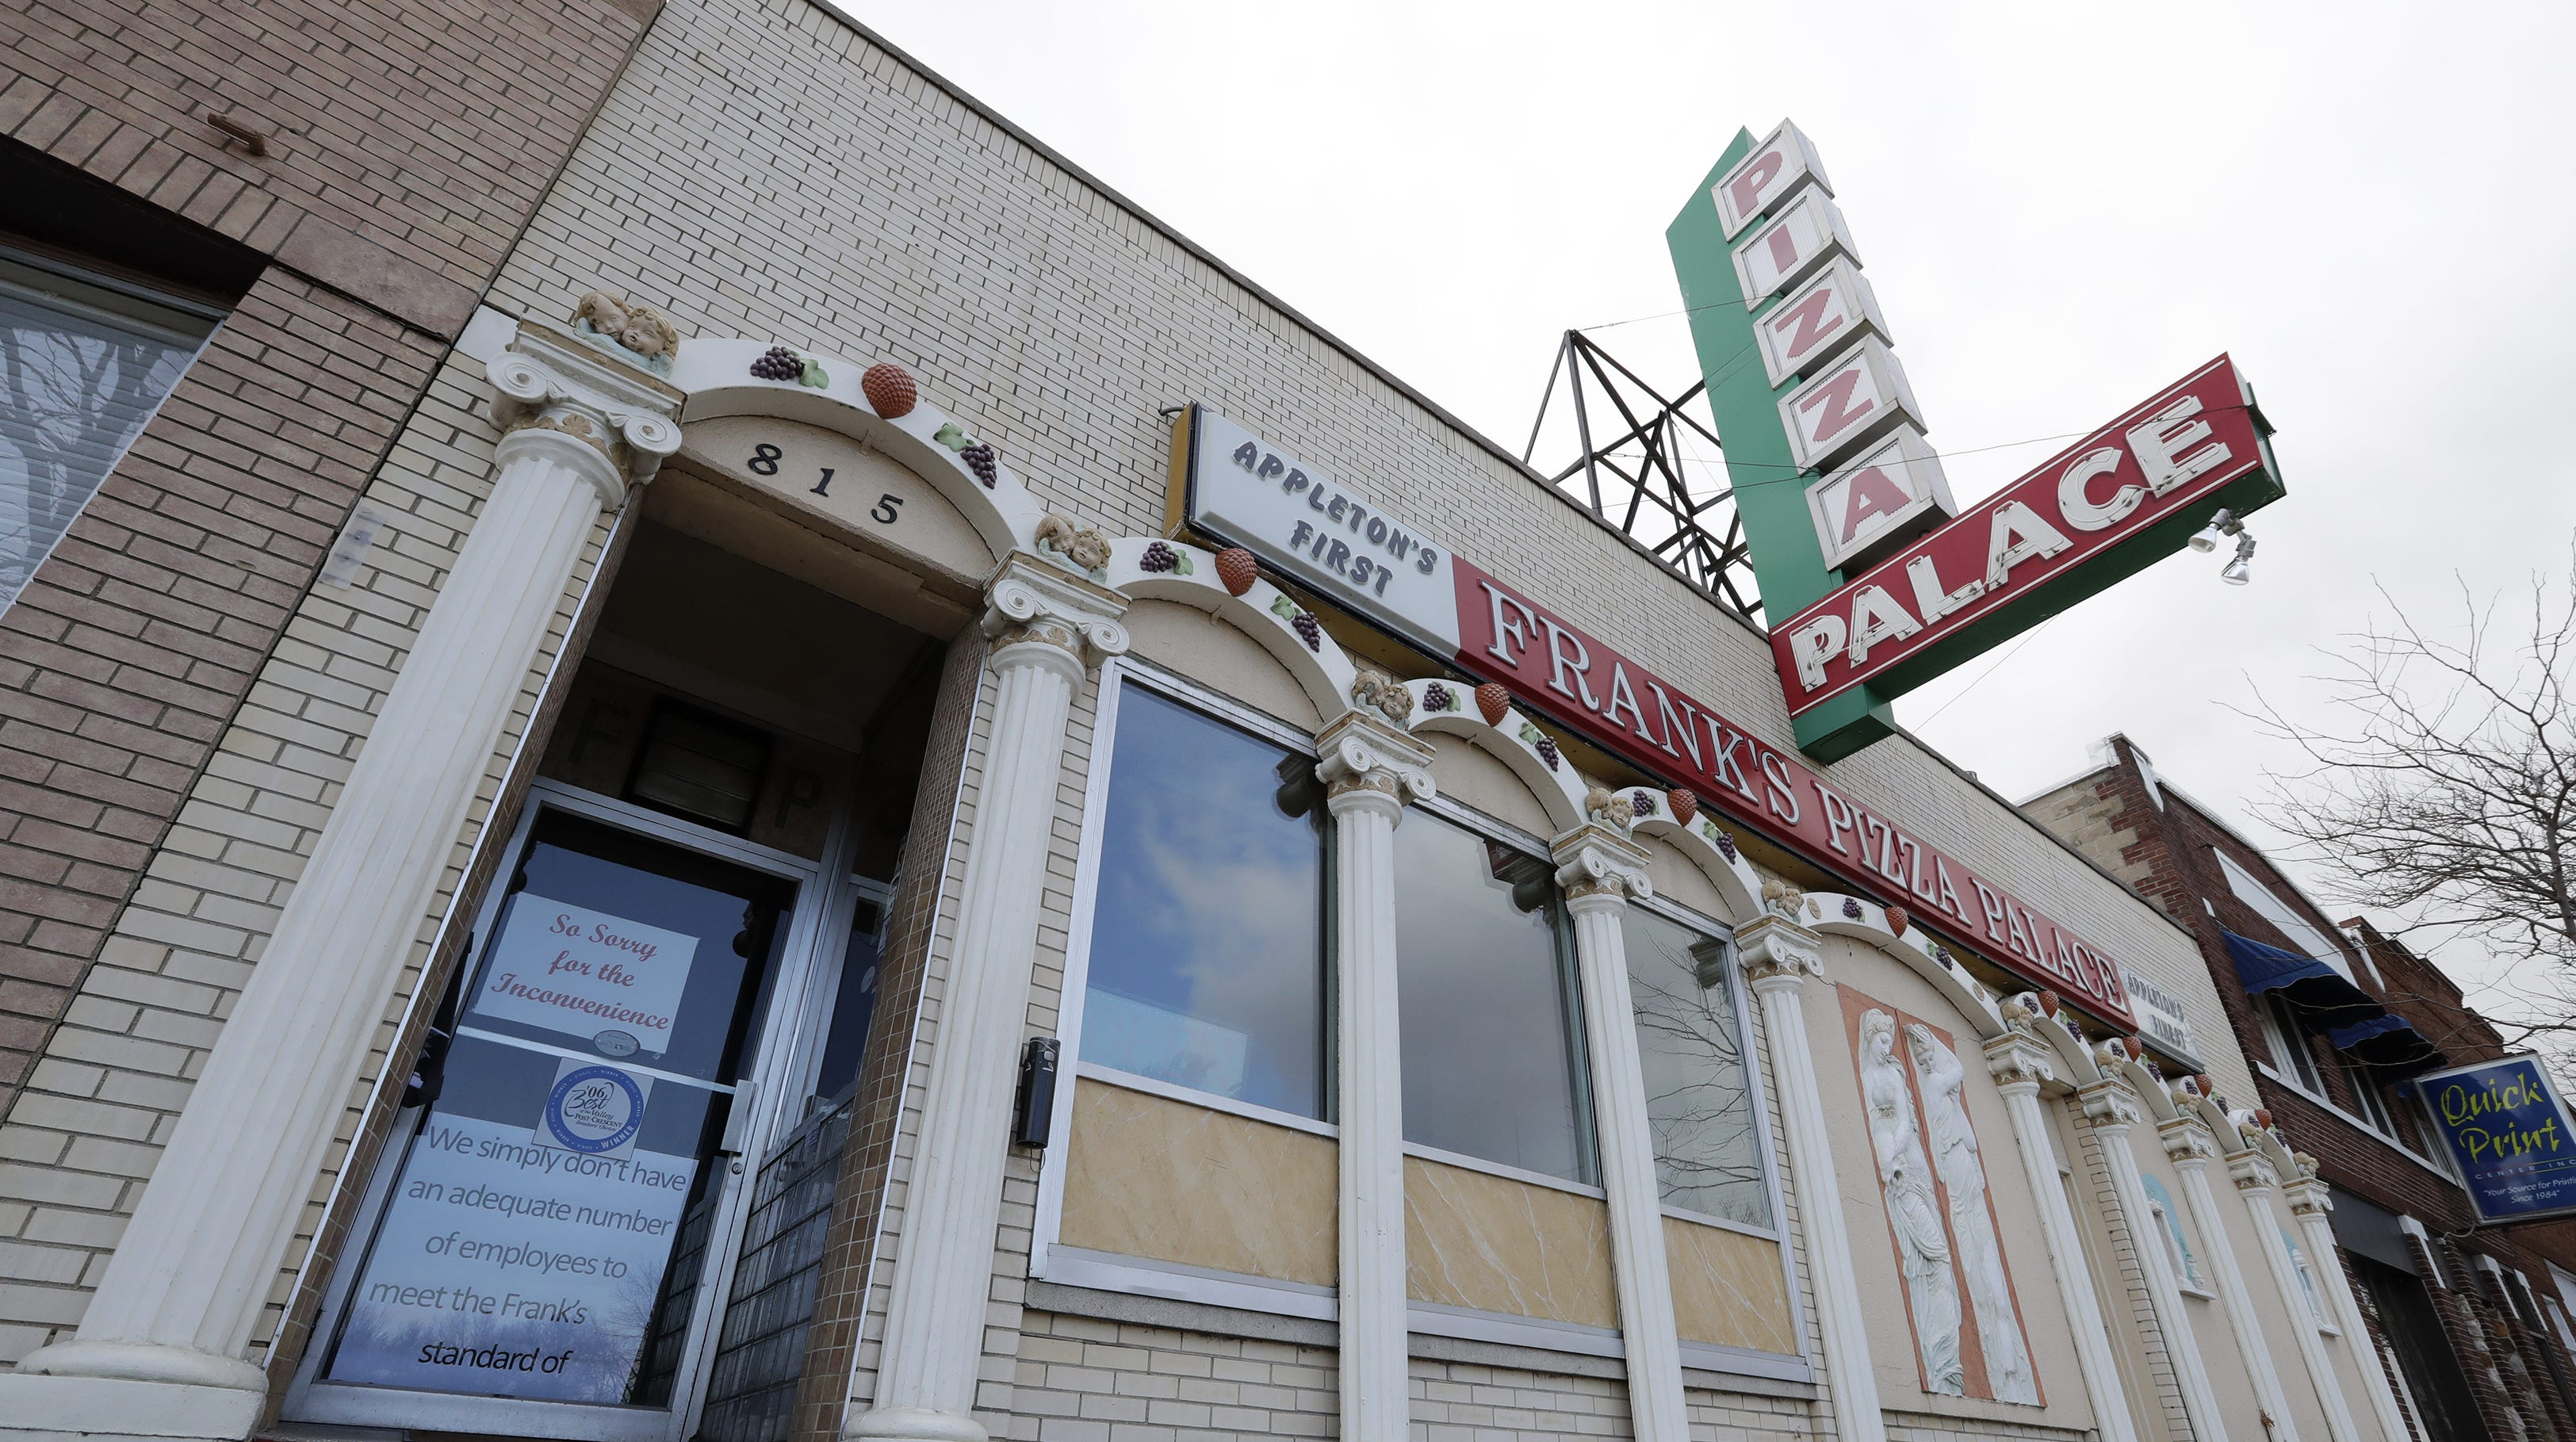 The Buzz: Frank's Pizza Palace closure rattles customers